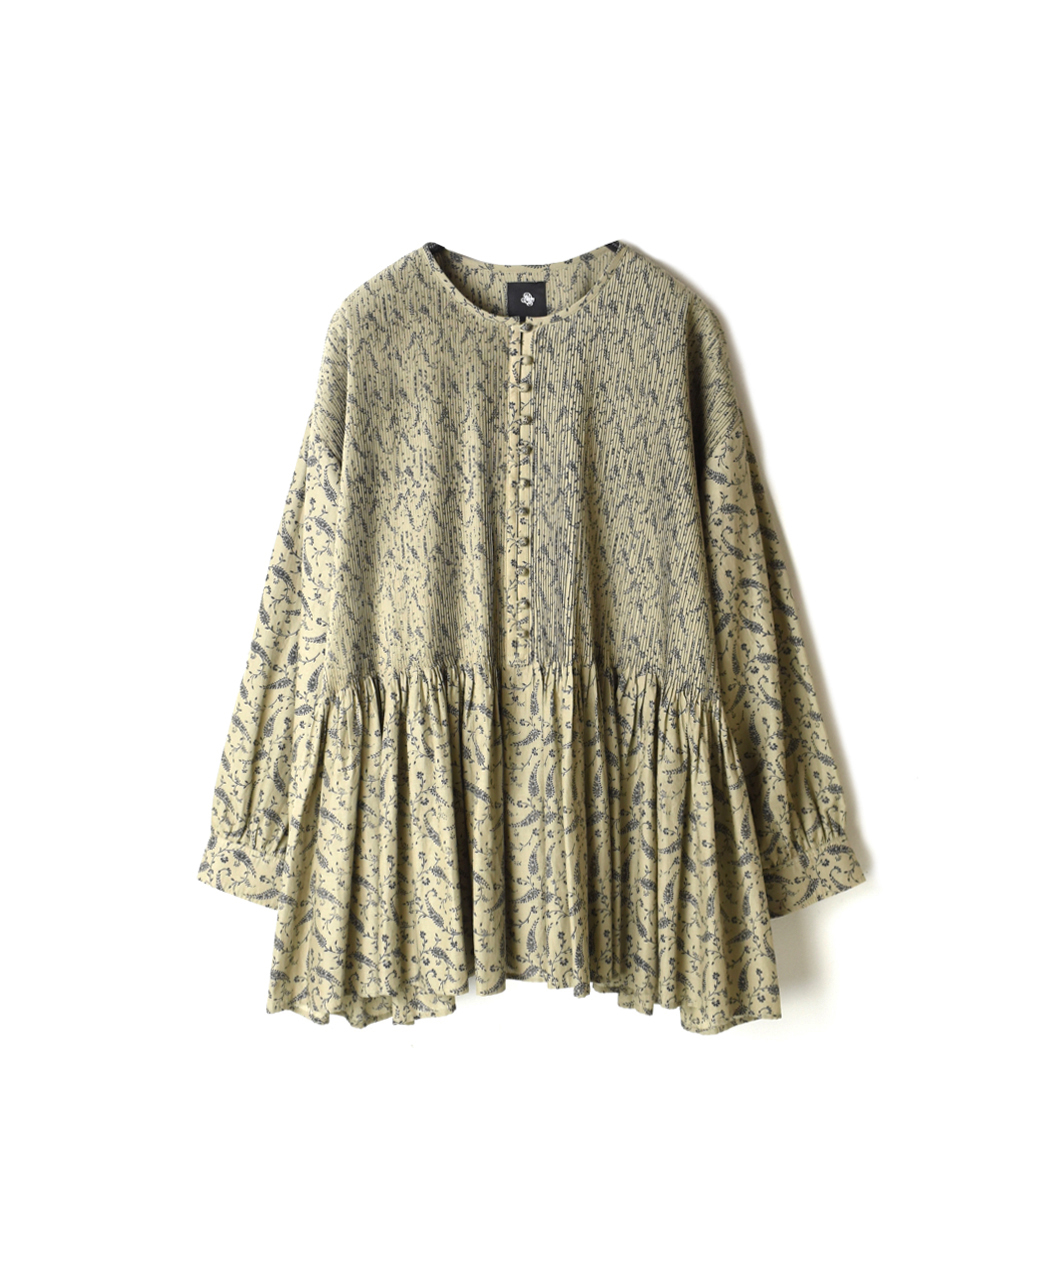 INMDS19731 PAISLEY PRINT BALL BUTTON CREW-NECK SH